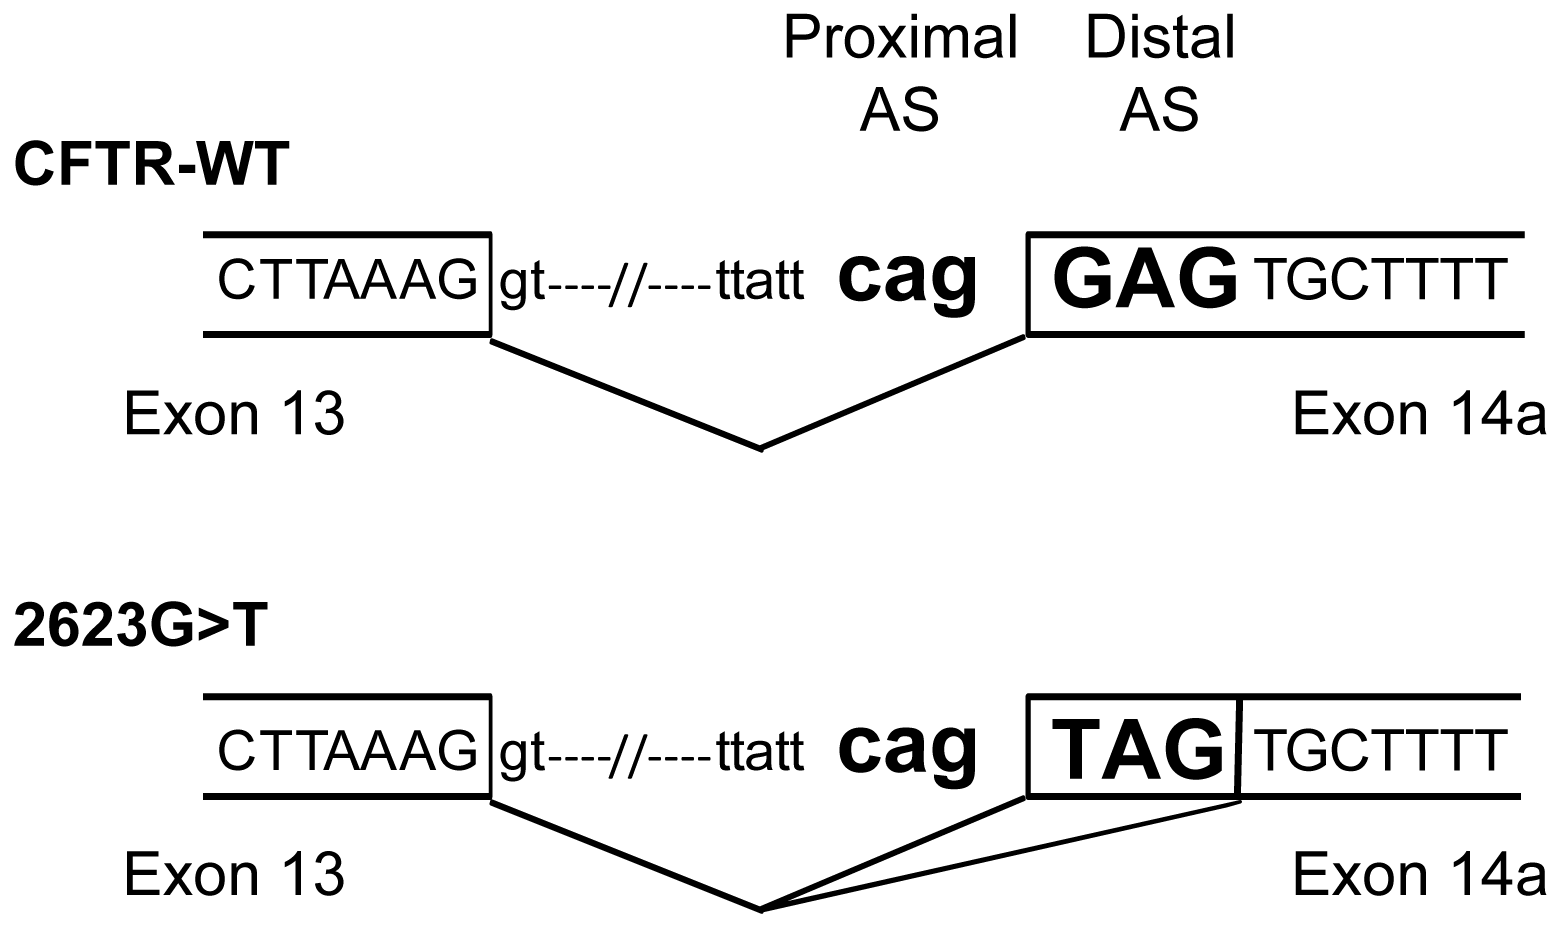 Schematic representation of the intron 13/exon 14a junction.